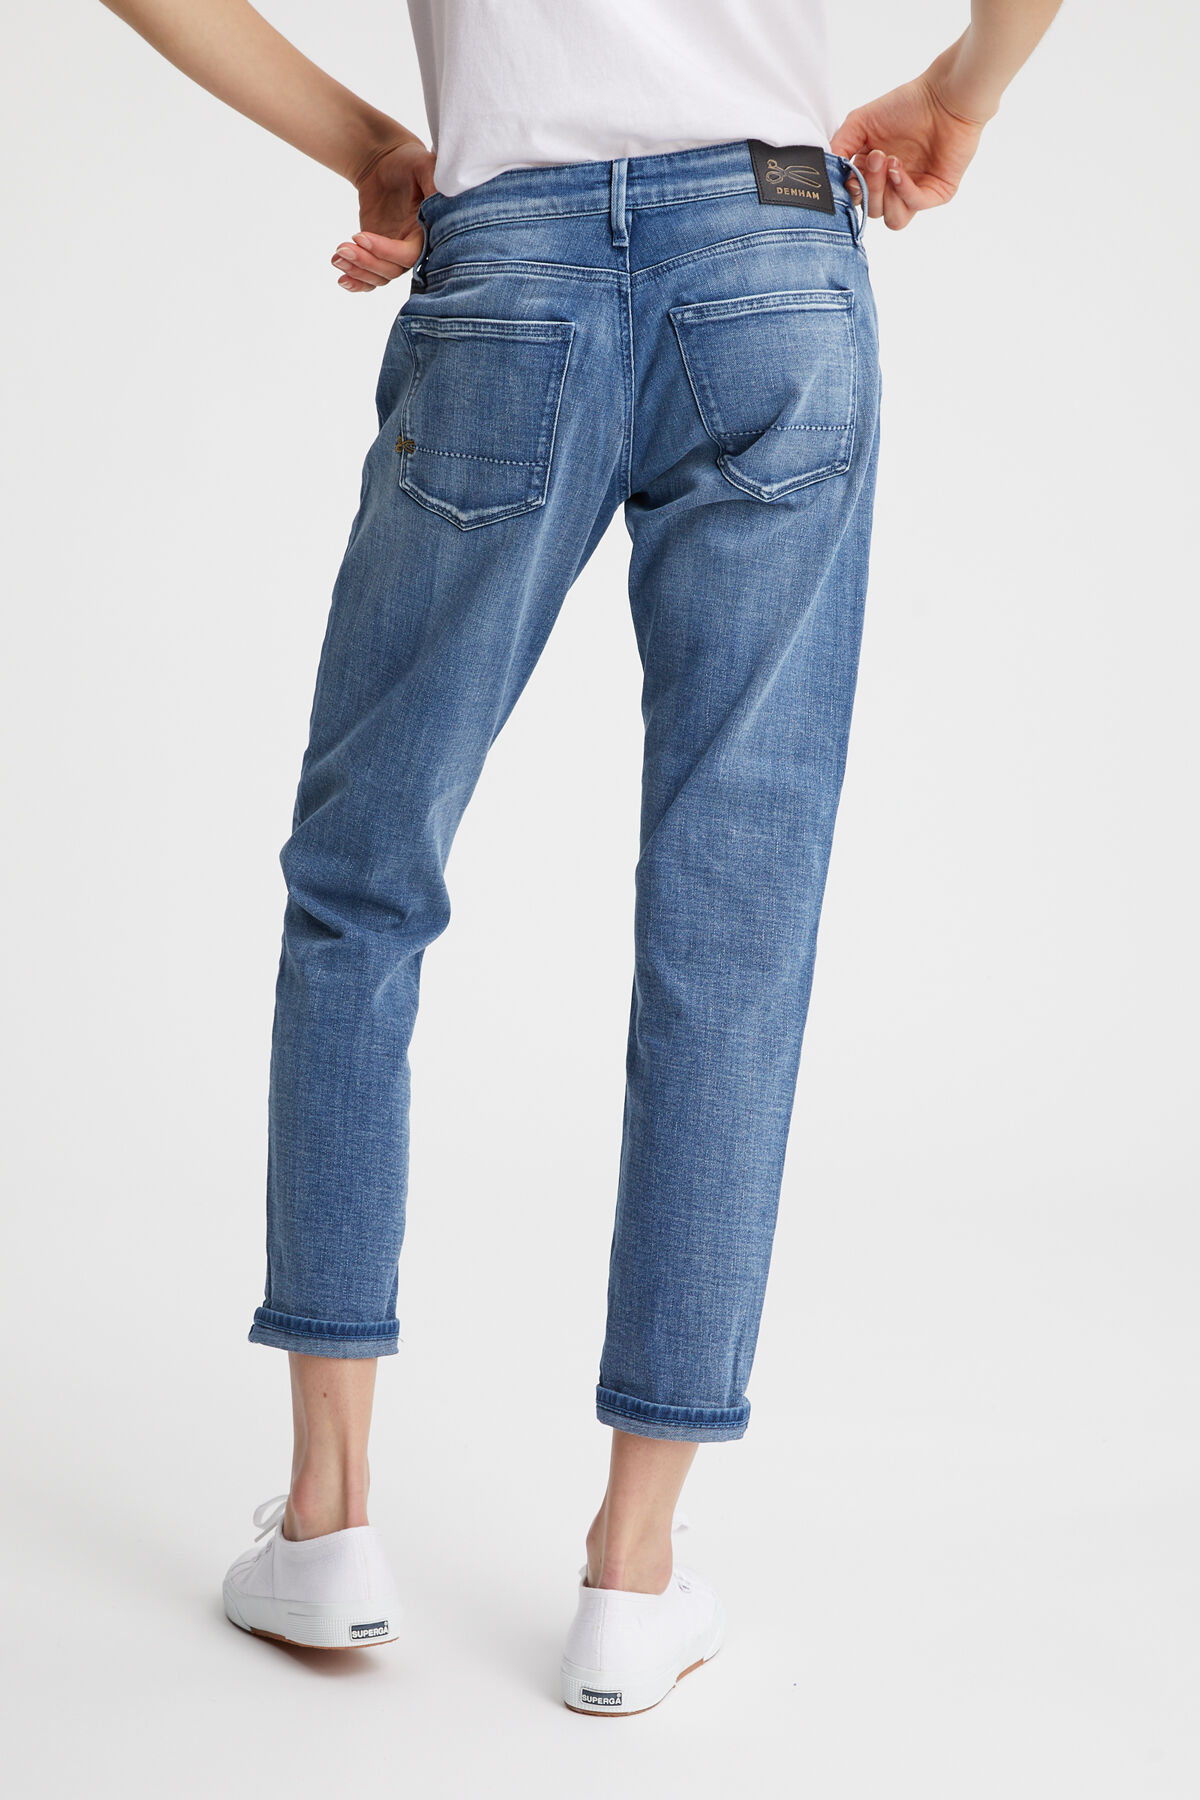 MONROE Subtle Fade Denim - Girlfriend Fit